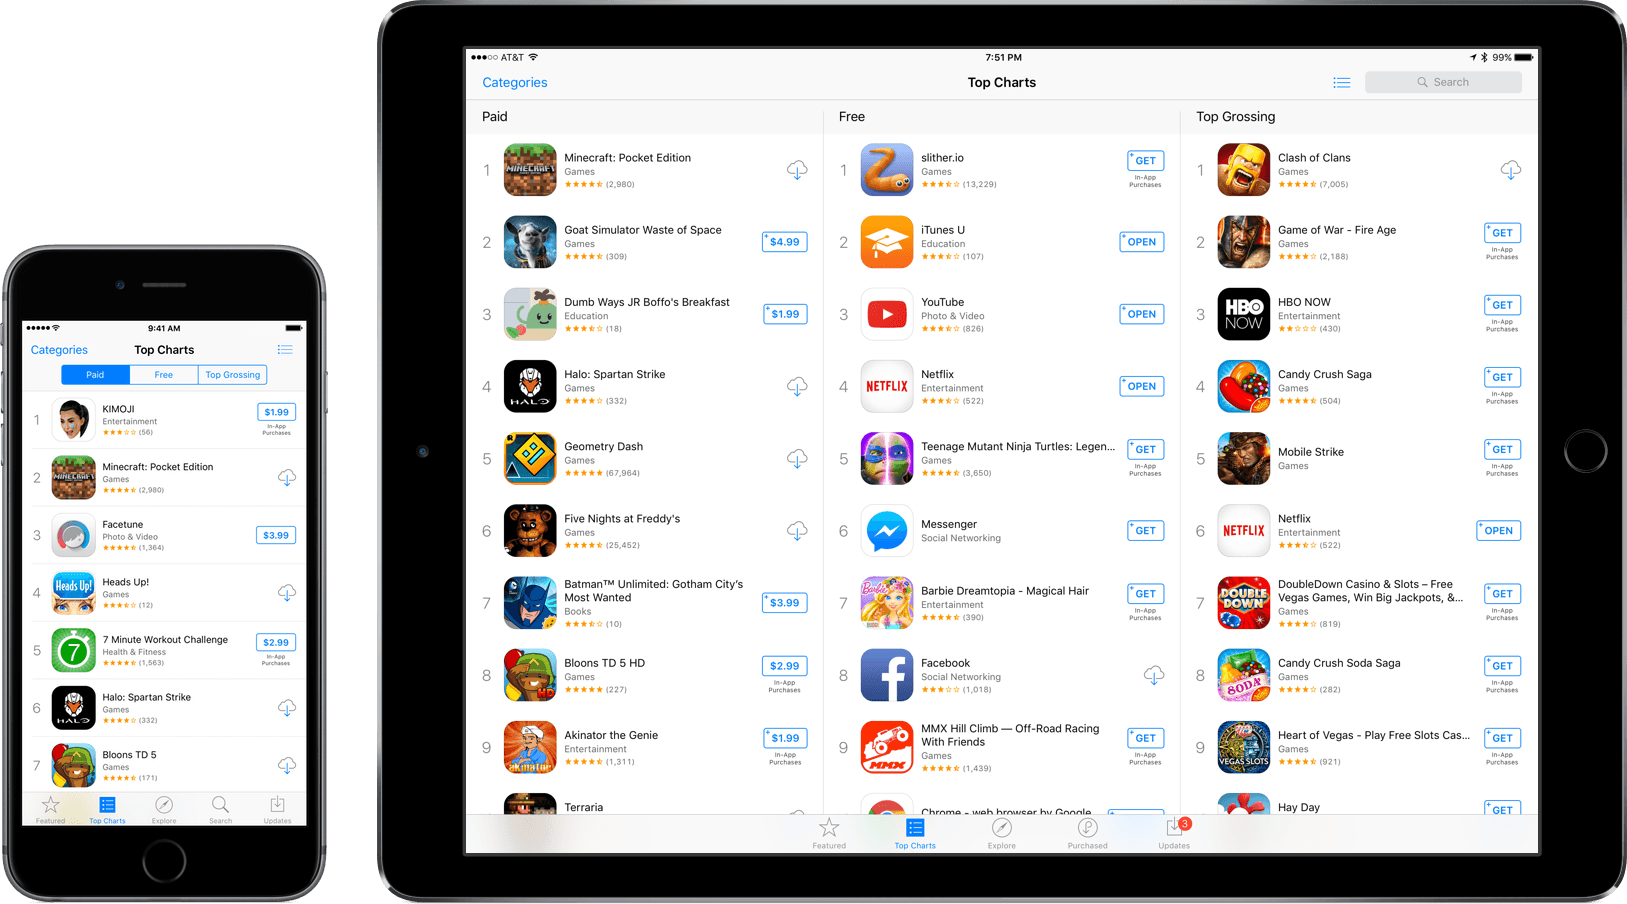 There is very little turnover in the App Store's top charts.